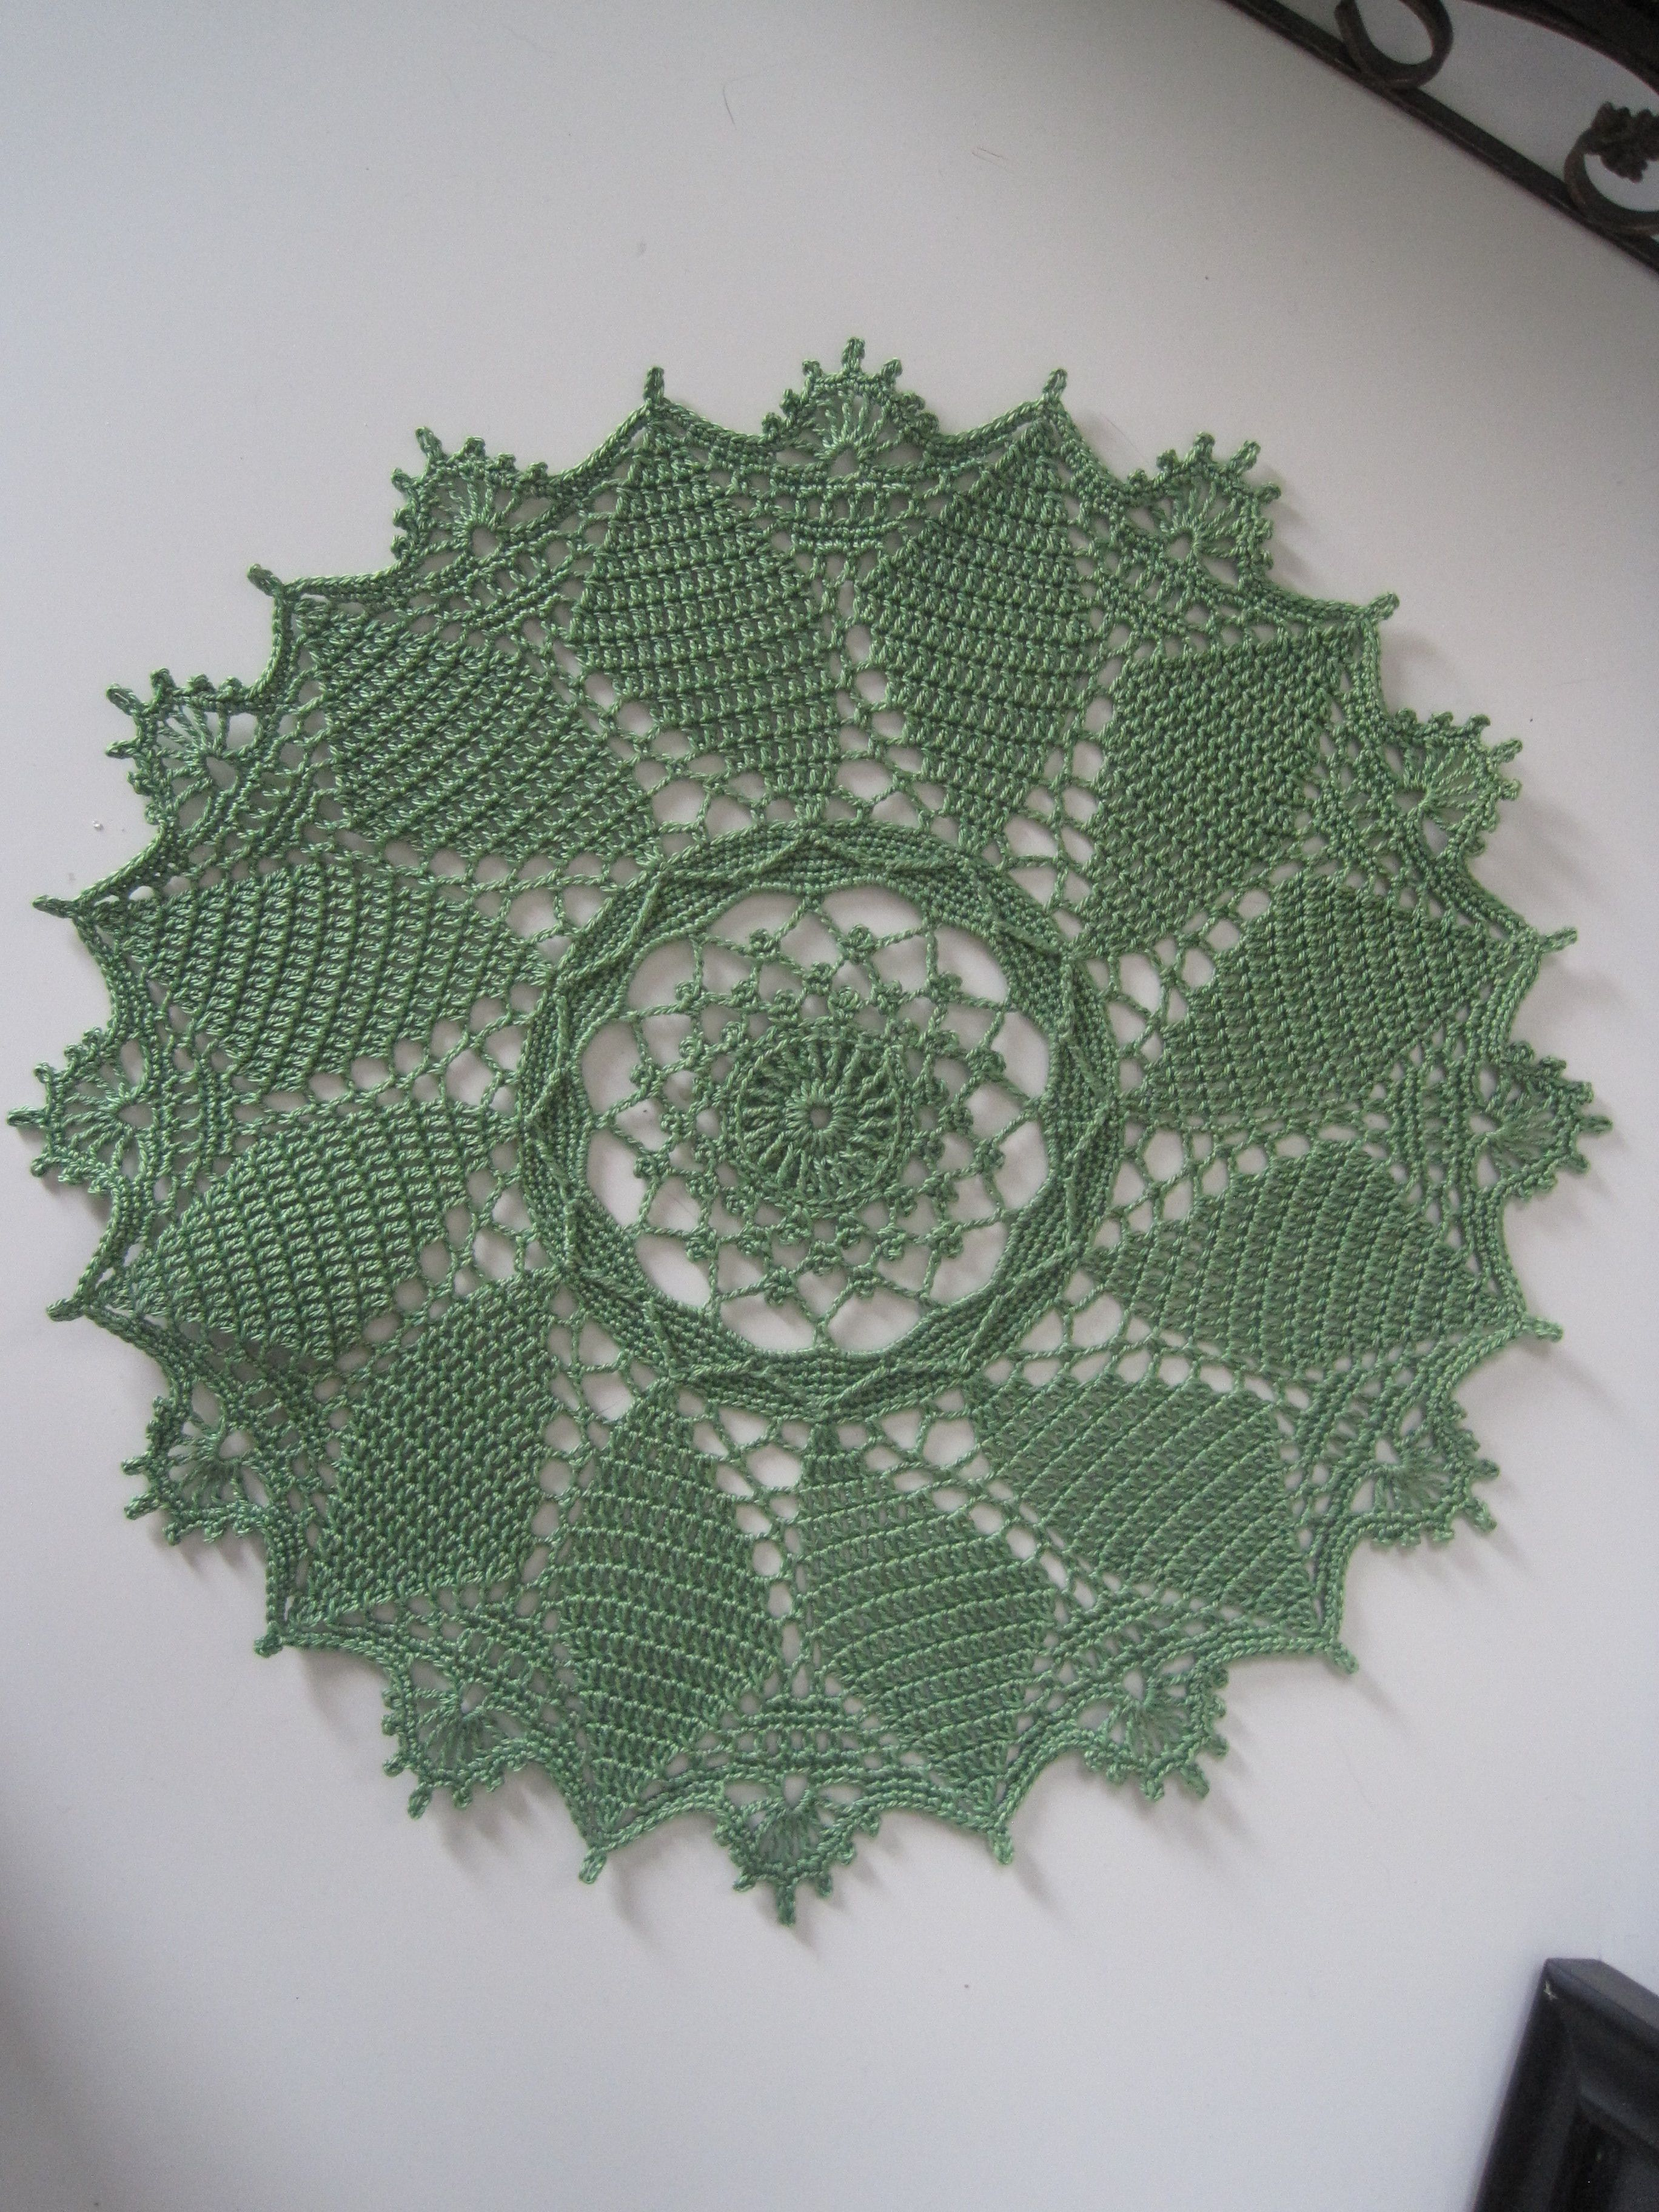 Windsor Round from Absolutely Gorgeous Doilies by Pat Kristofferson 2014